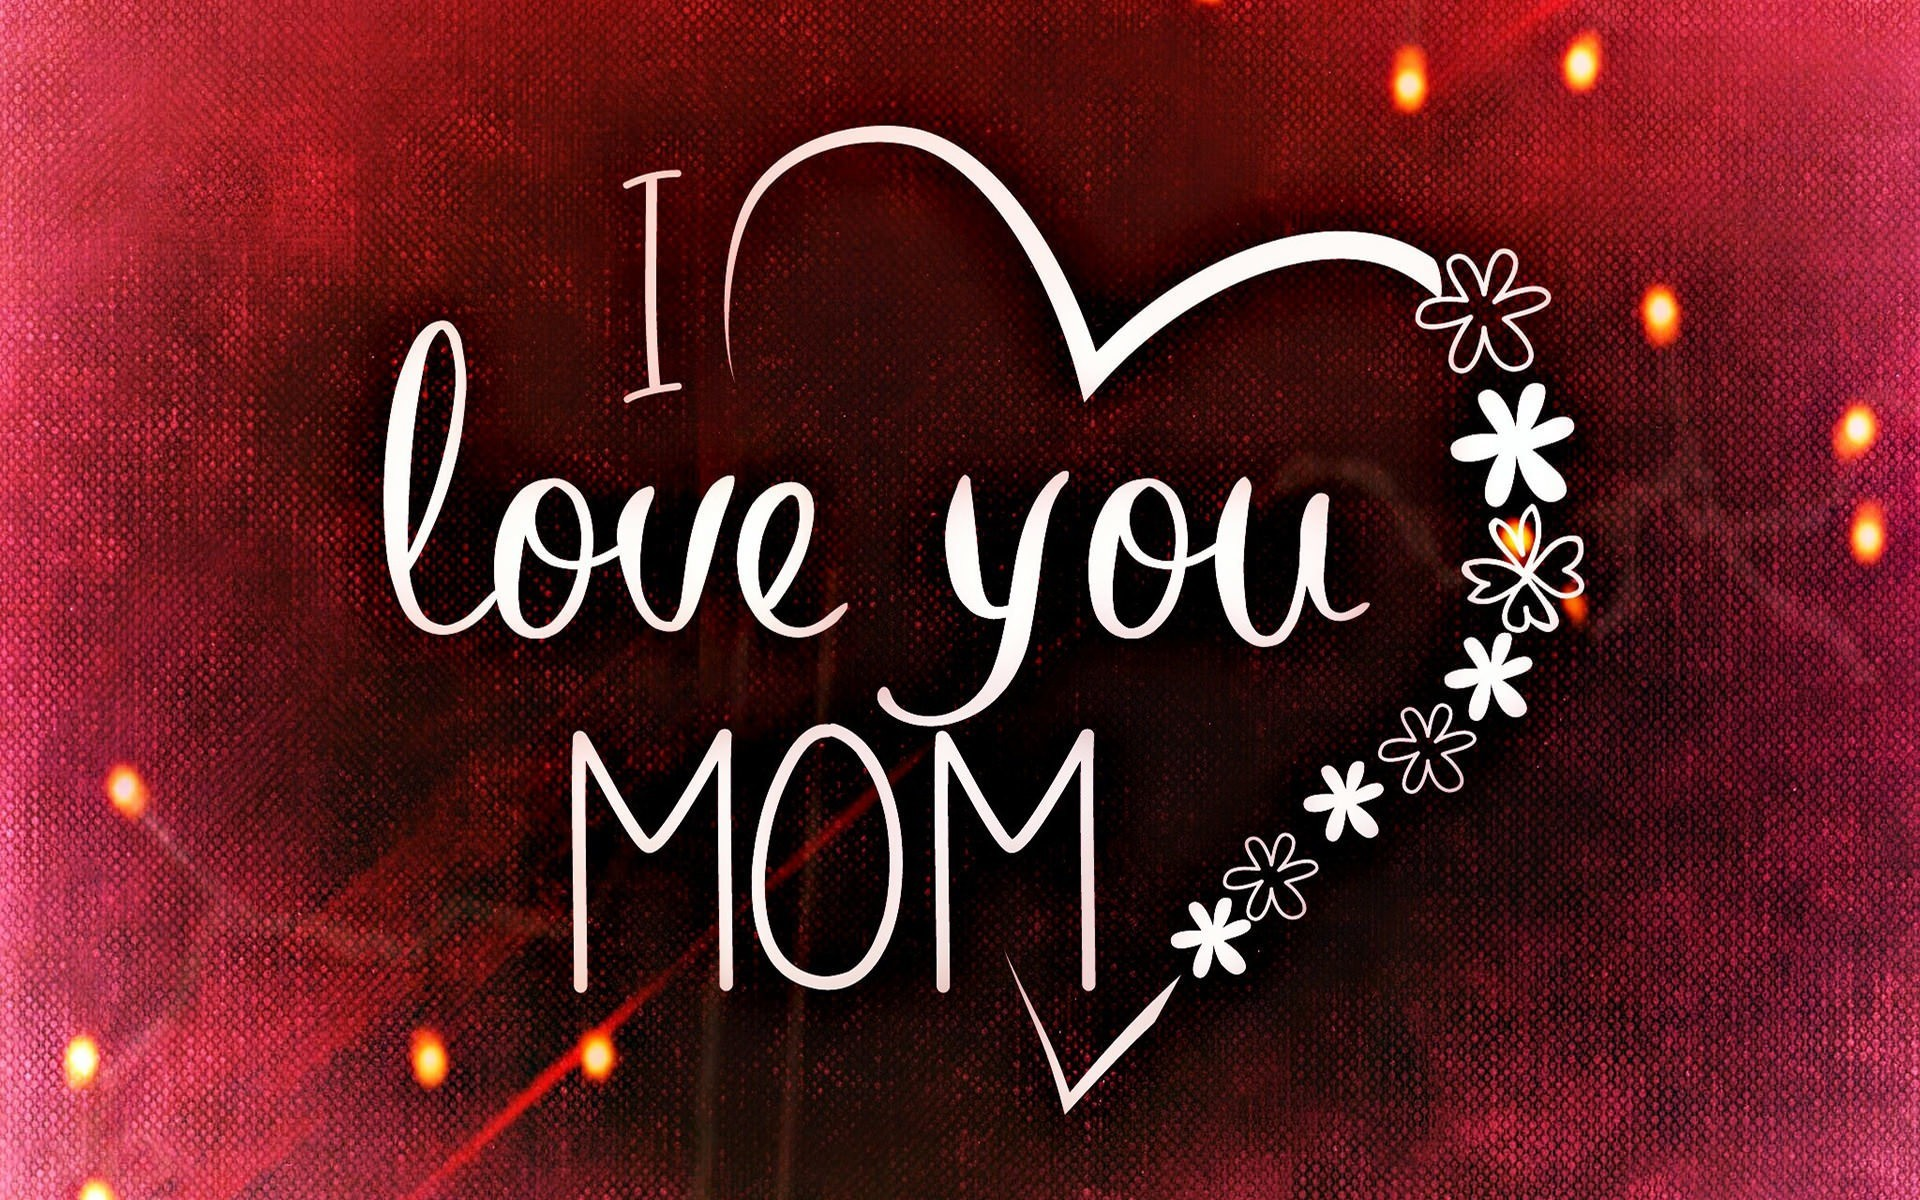 1920x1200, I Love You Mom And Dad Hd Wallpaper I Love - Ma I Love You - HD Wallpaper